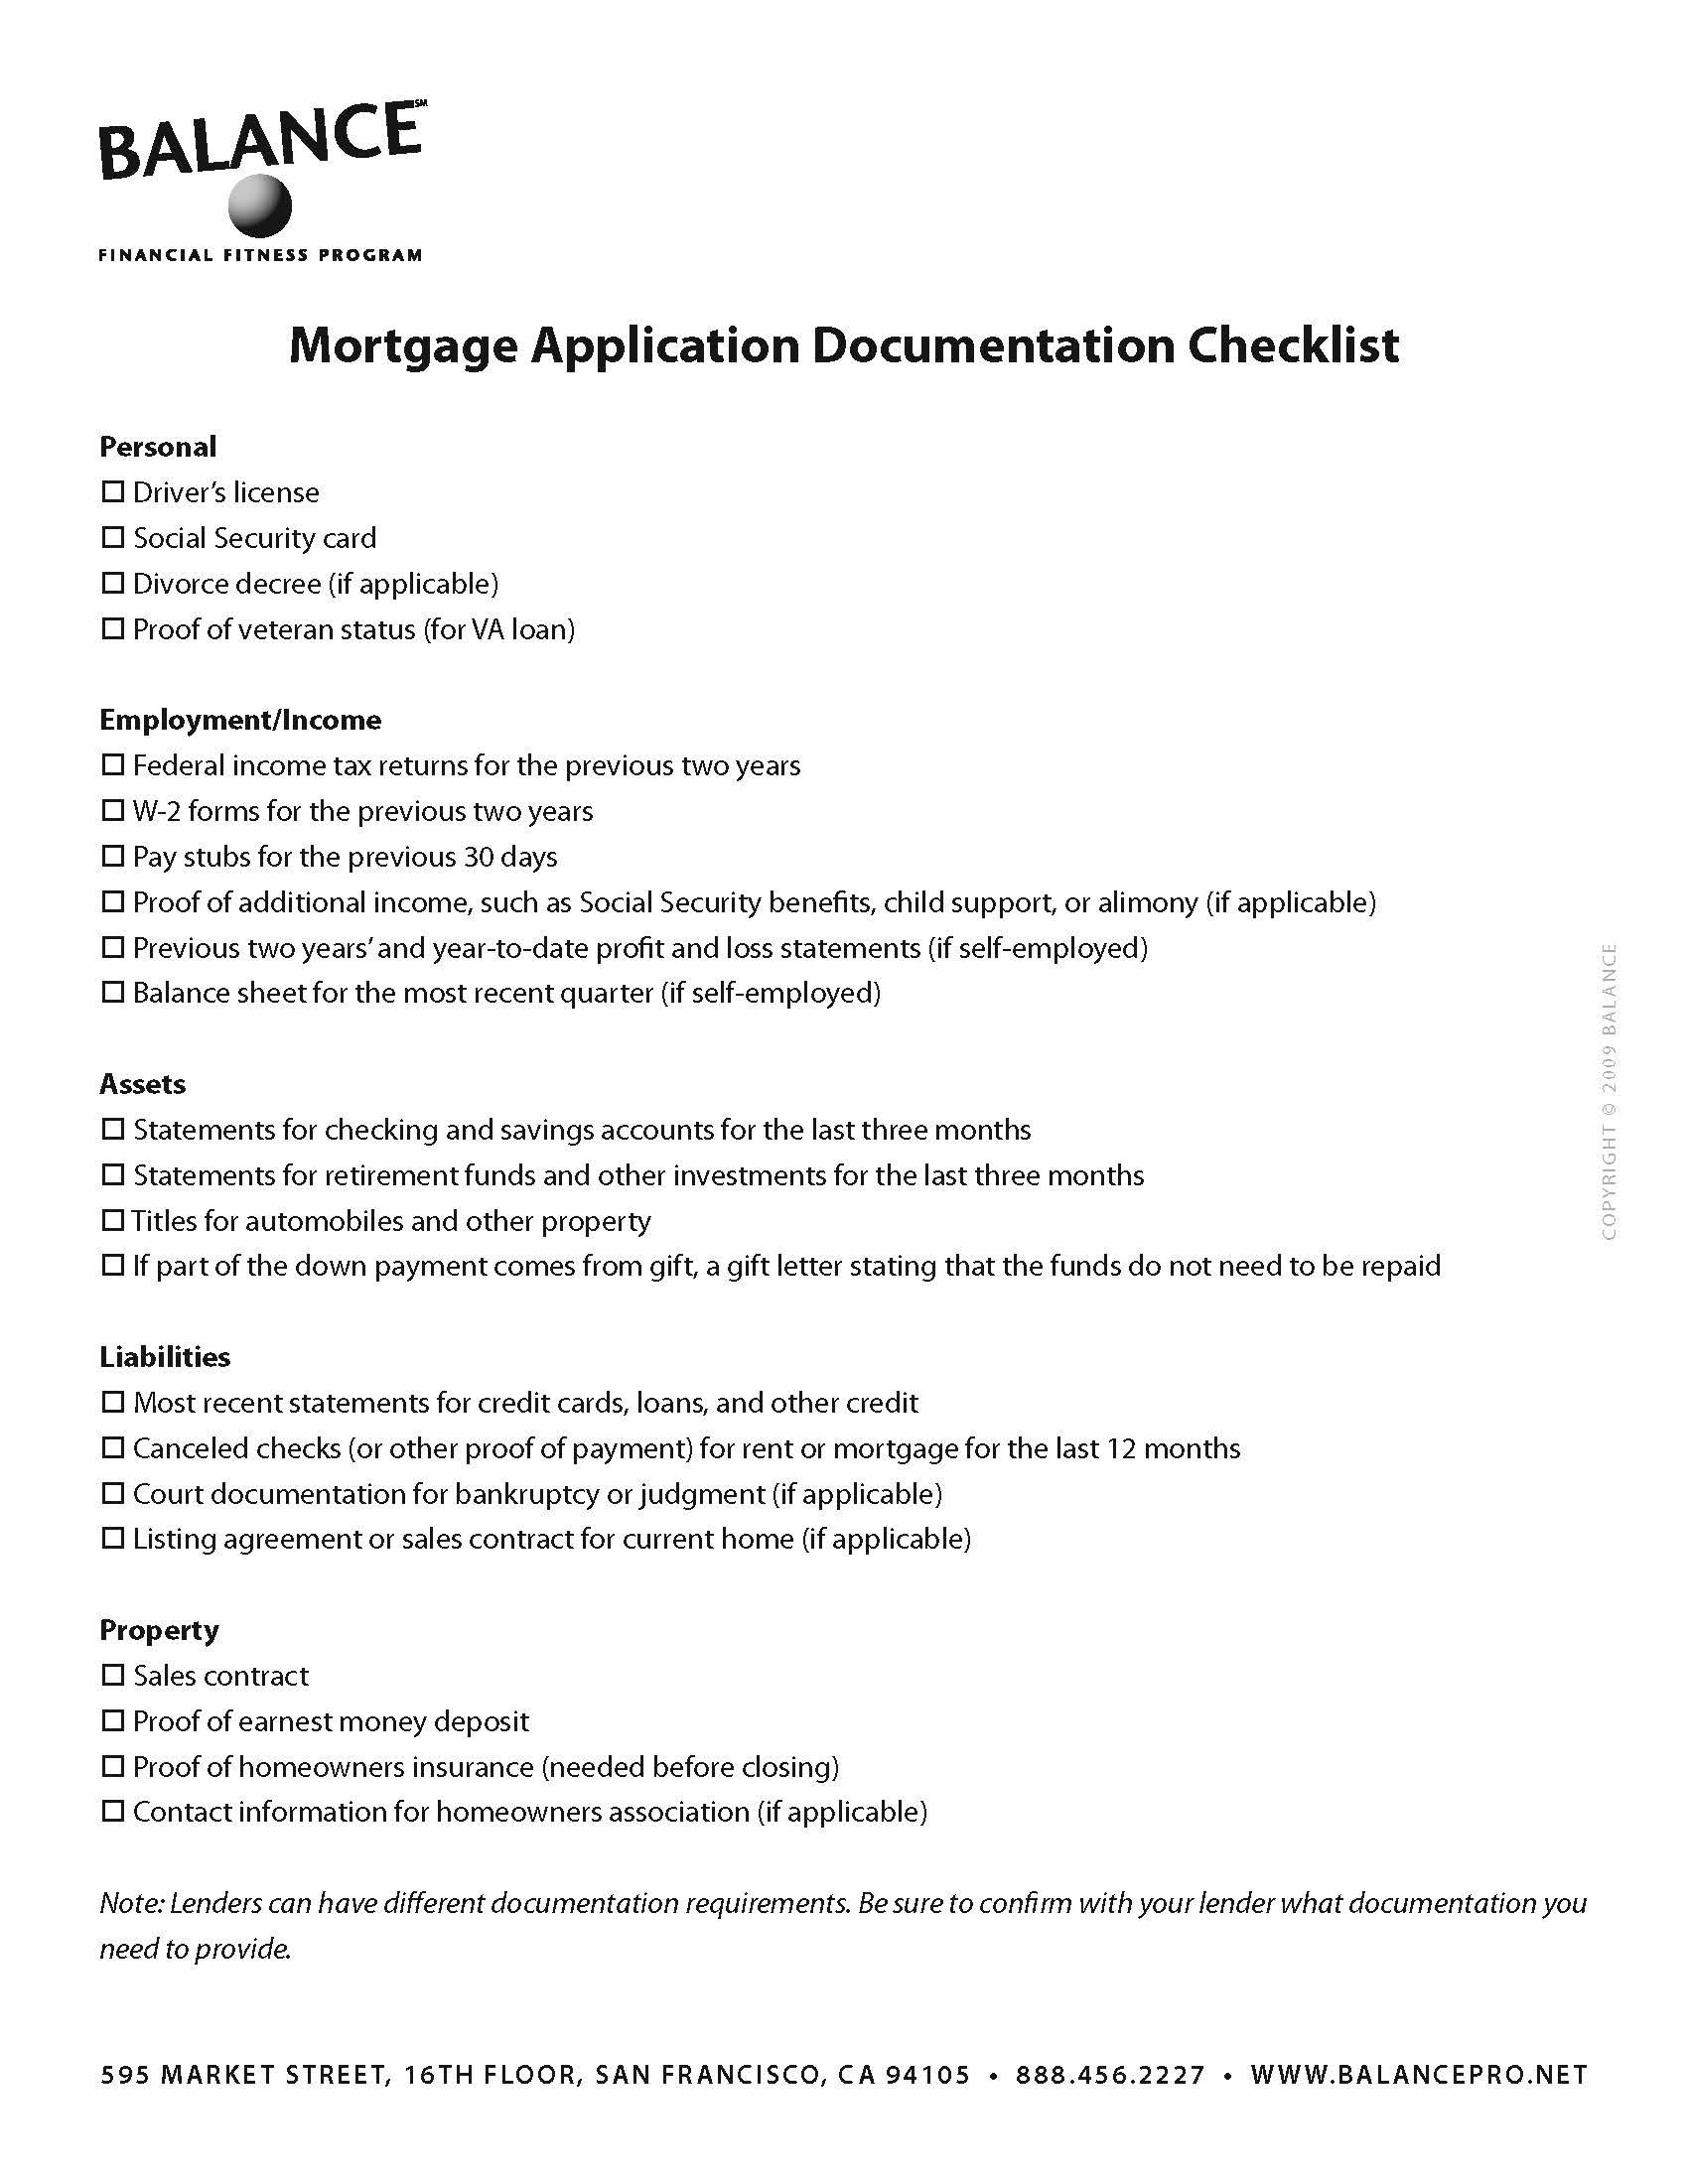 Mortgage Application Documentation Checklist Are You Planning To